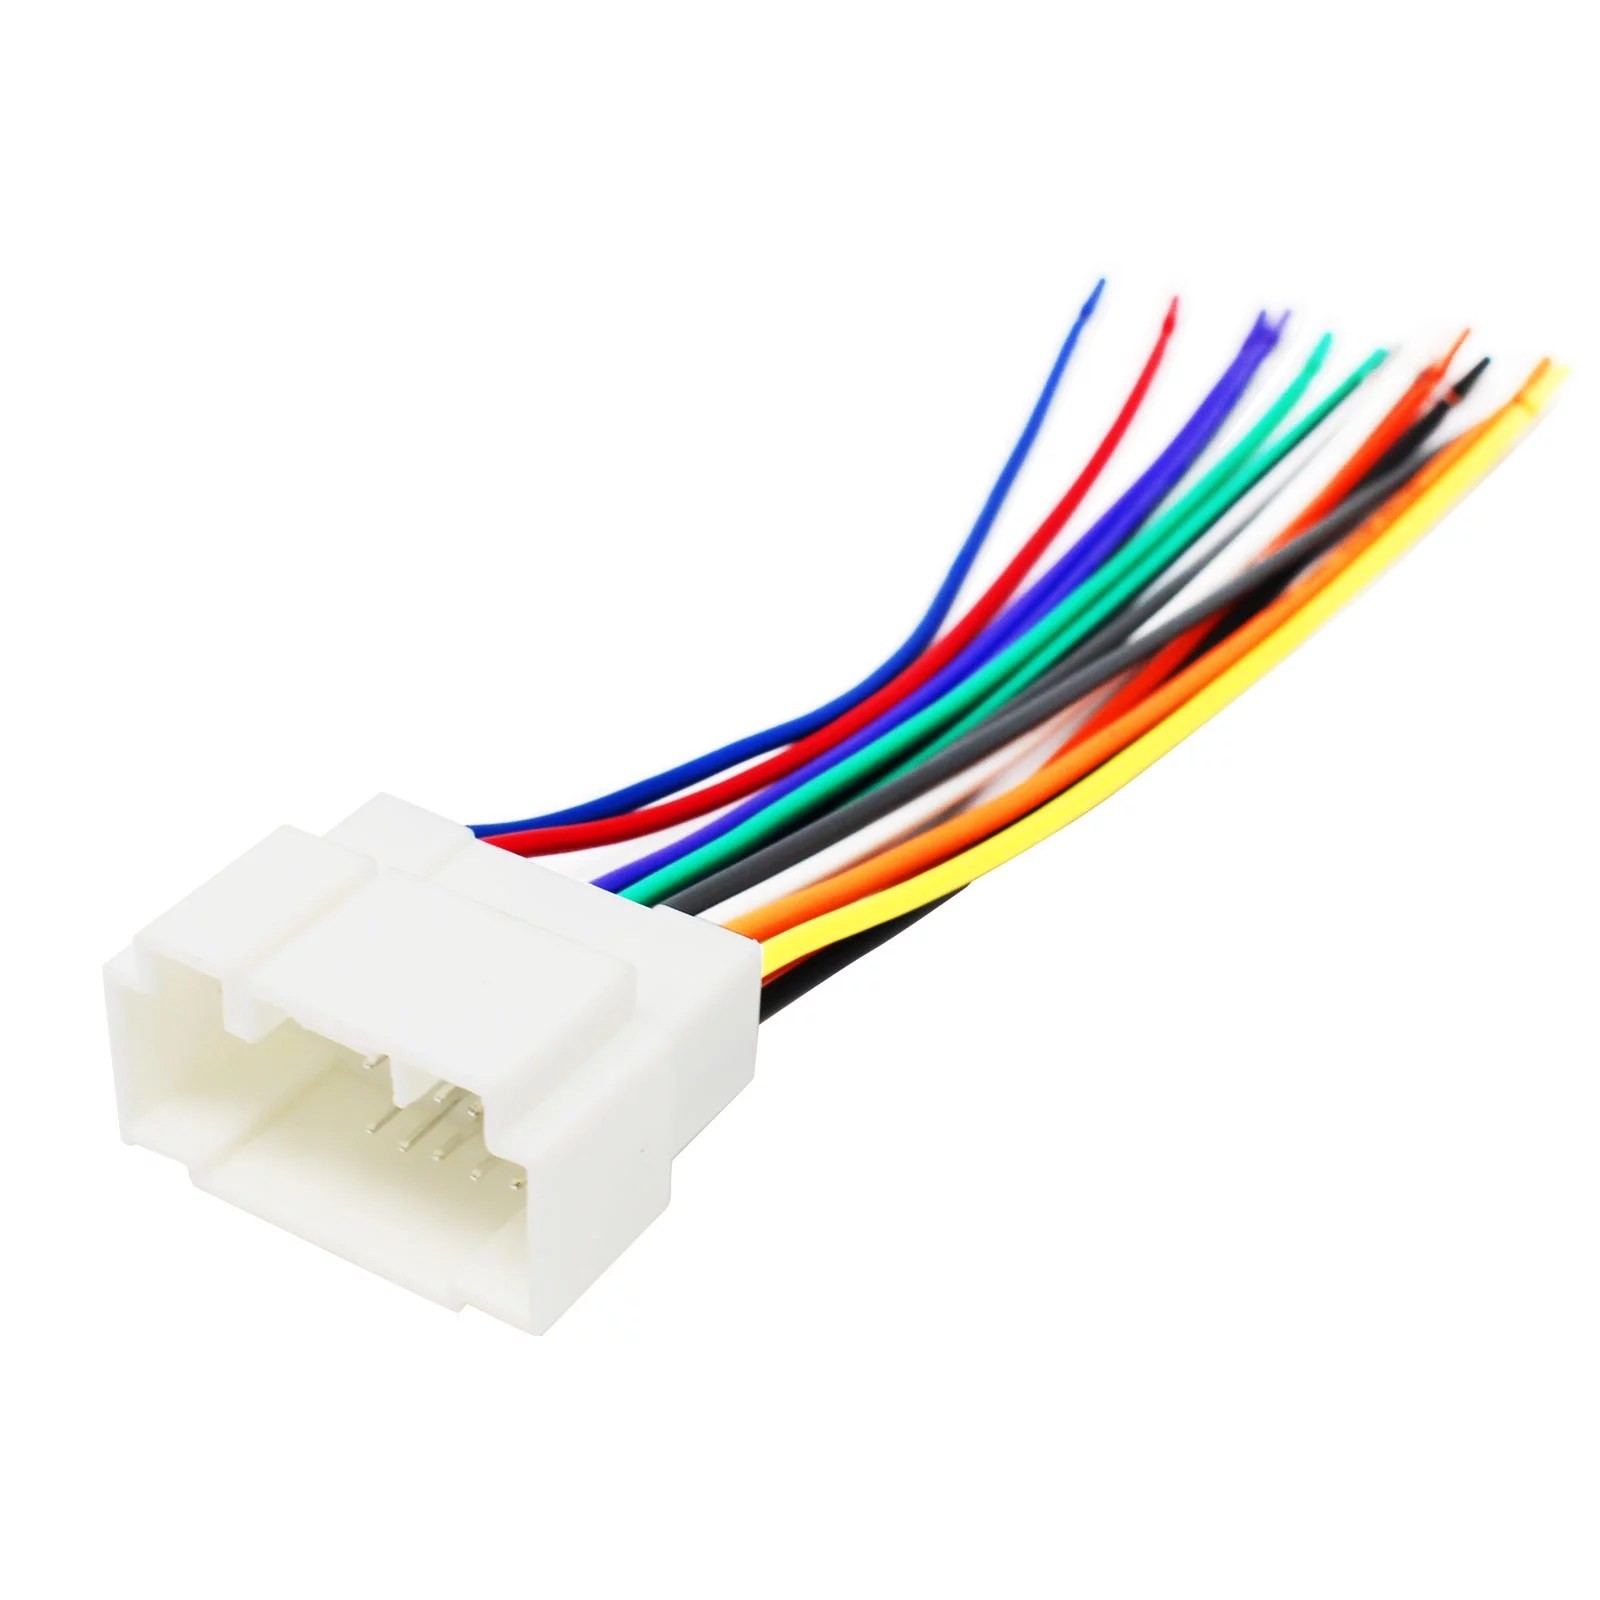 replacement radio wiring harness for 2001 honda civic 2002 honda 2006 honda civic wiring harness [ 1600 x 1600 Pixel ]